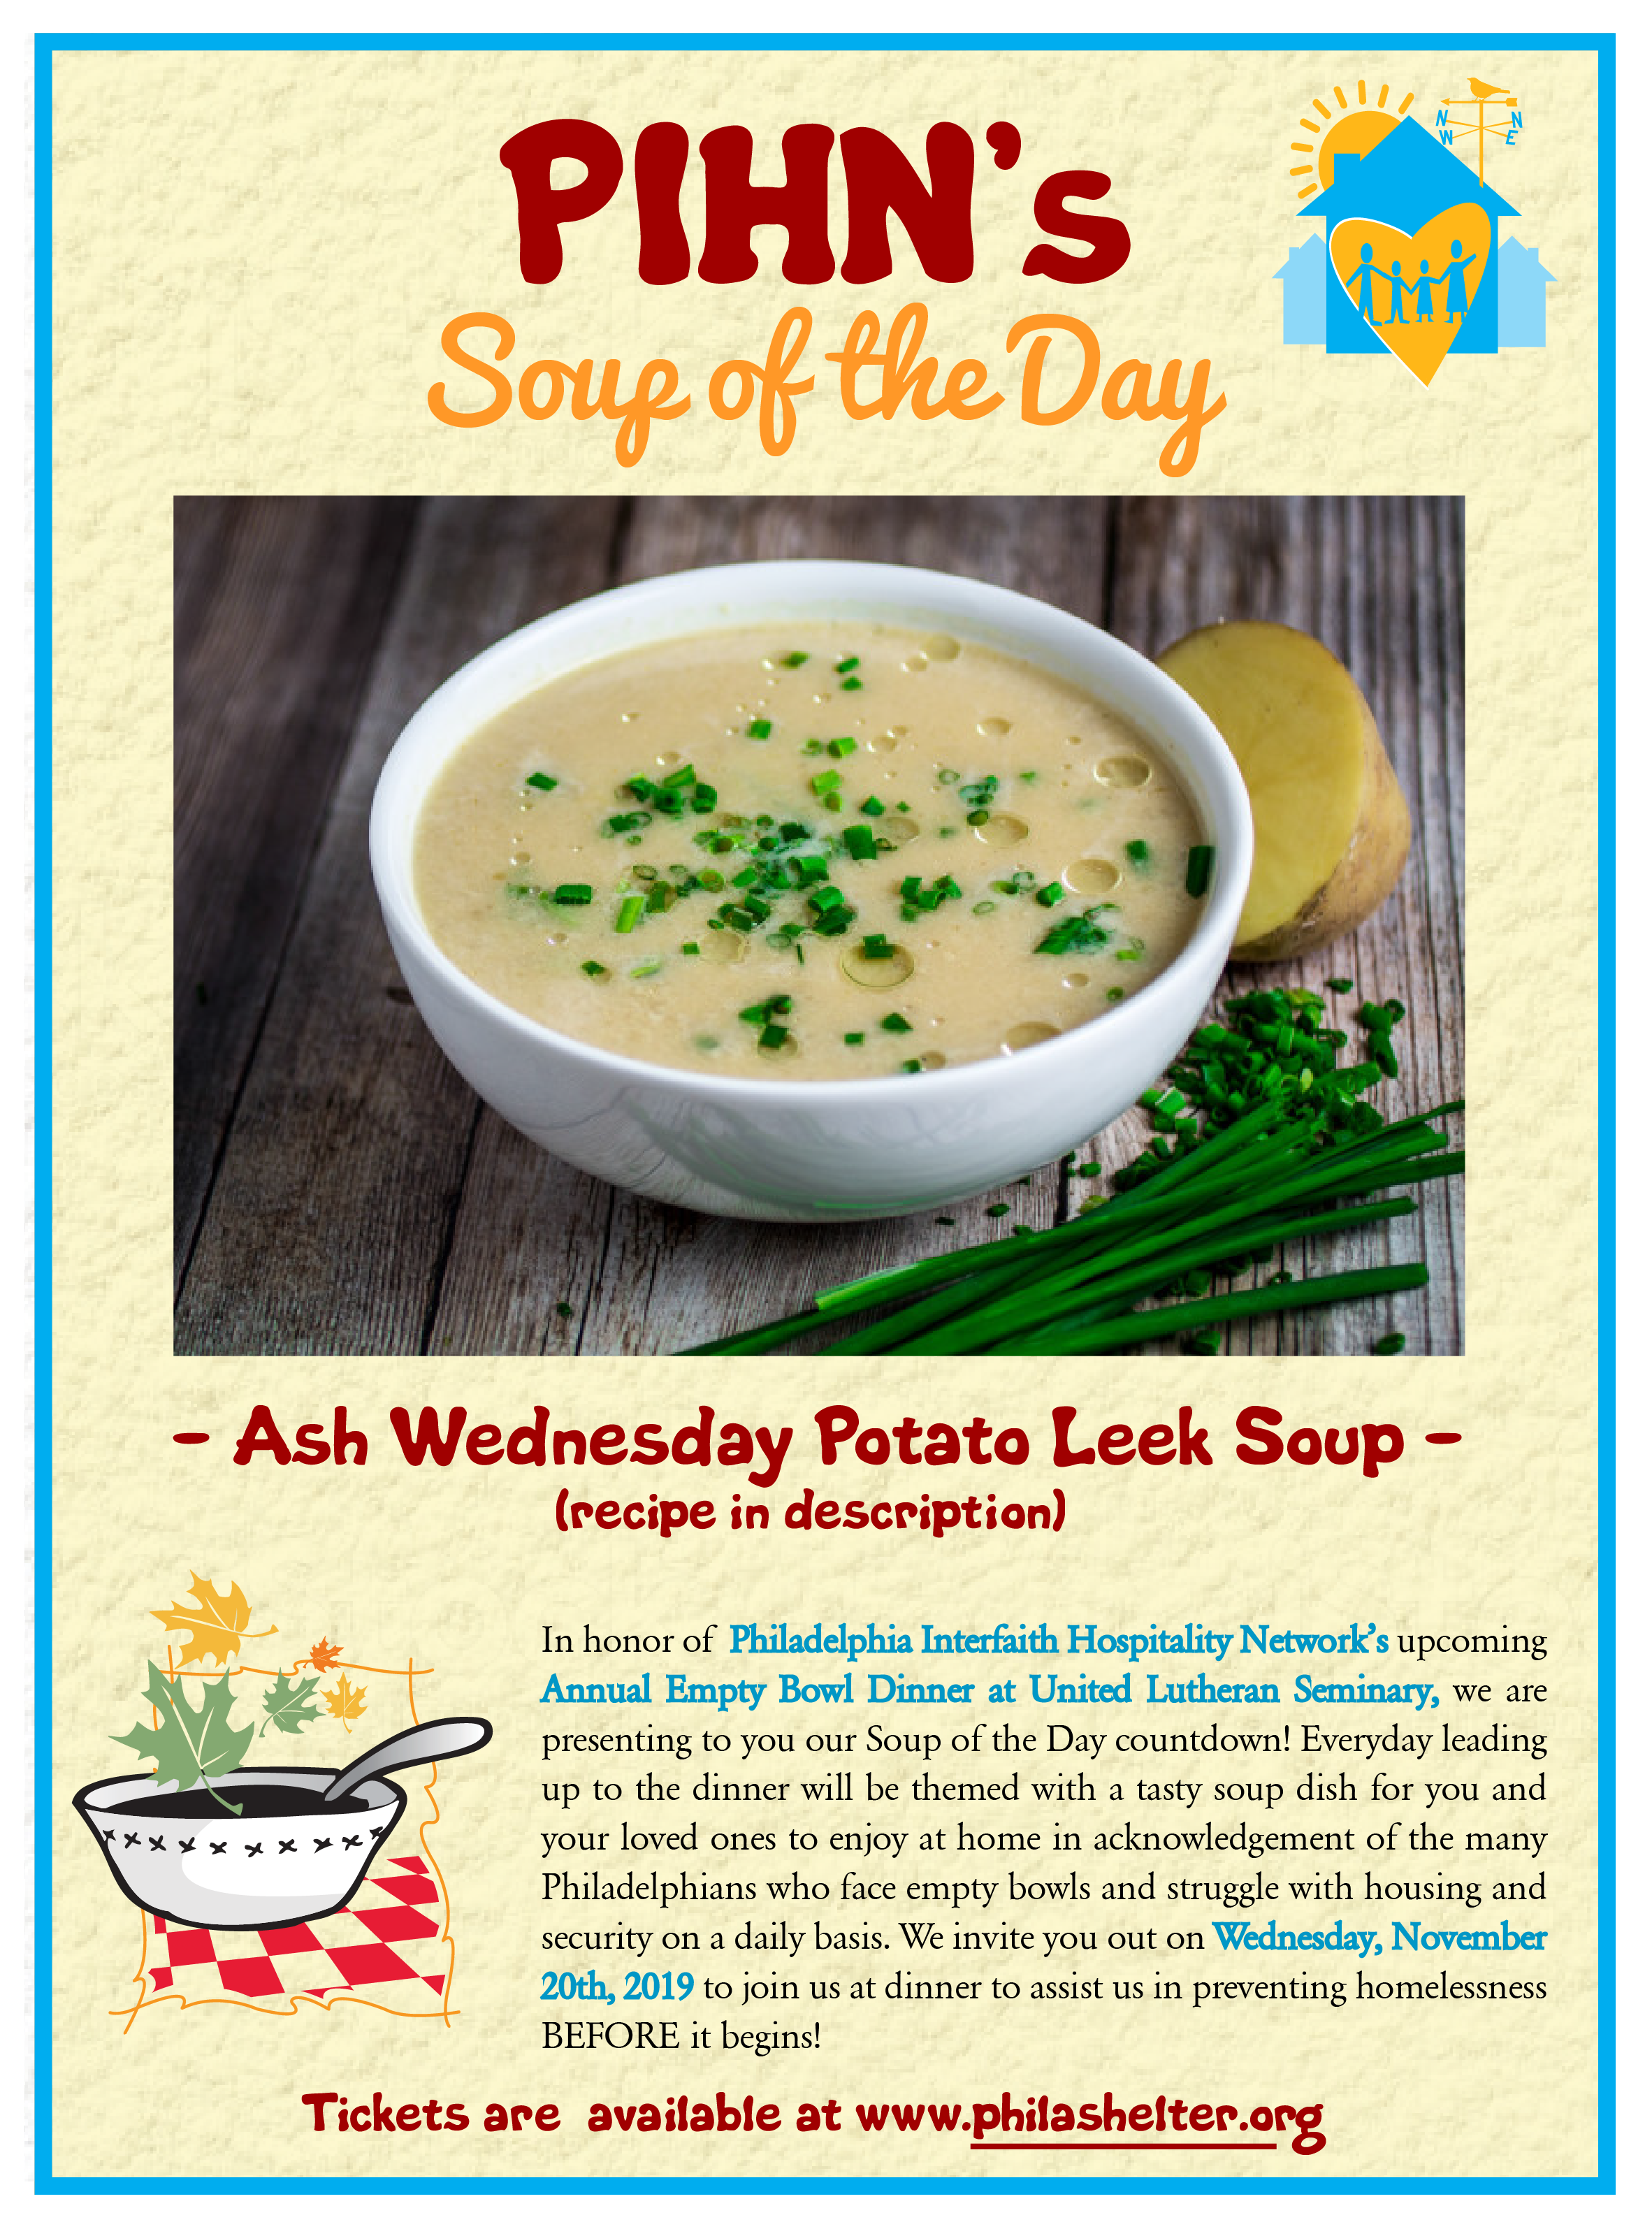 Ash Wednesday Potato Leek Soup